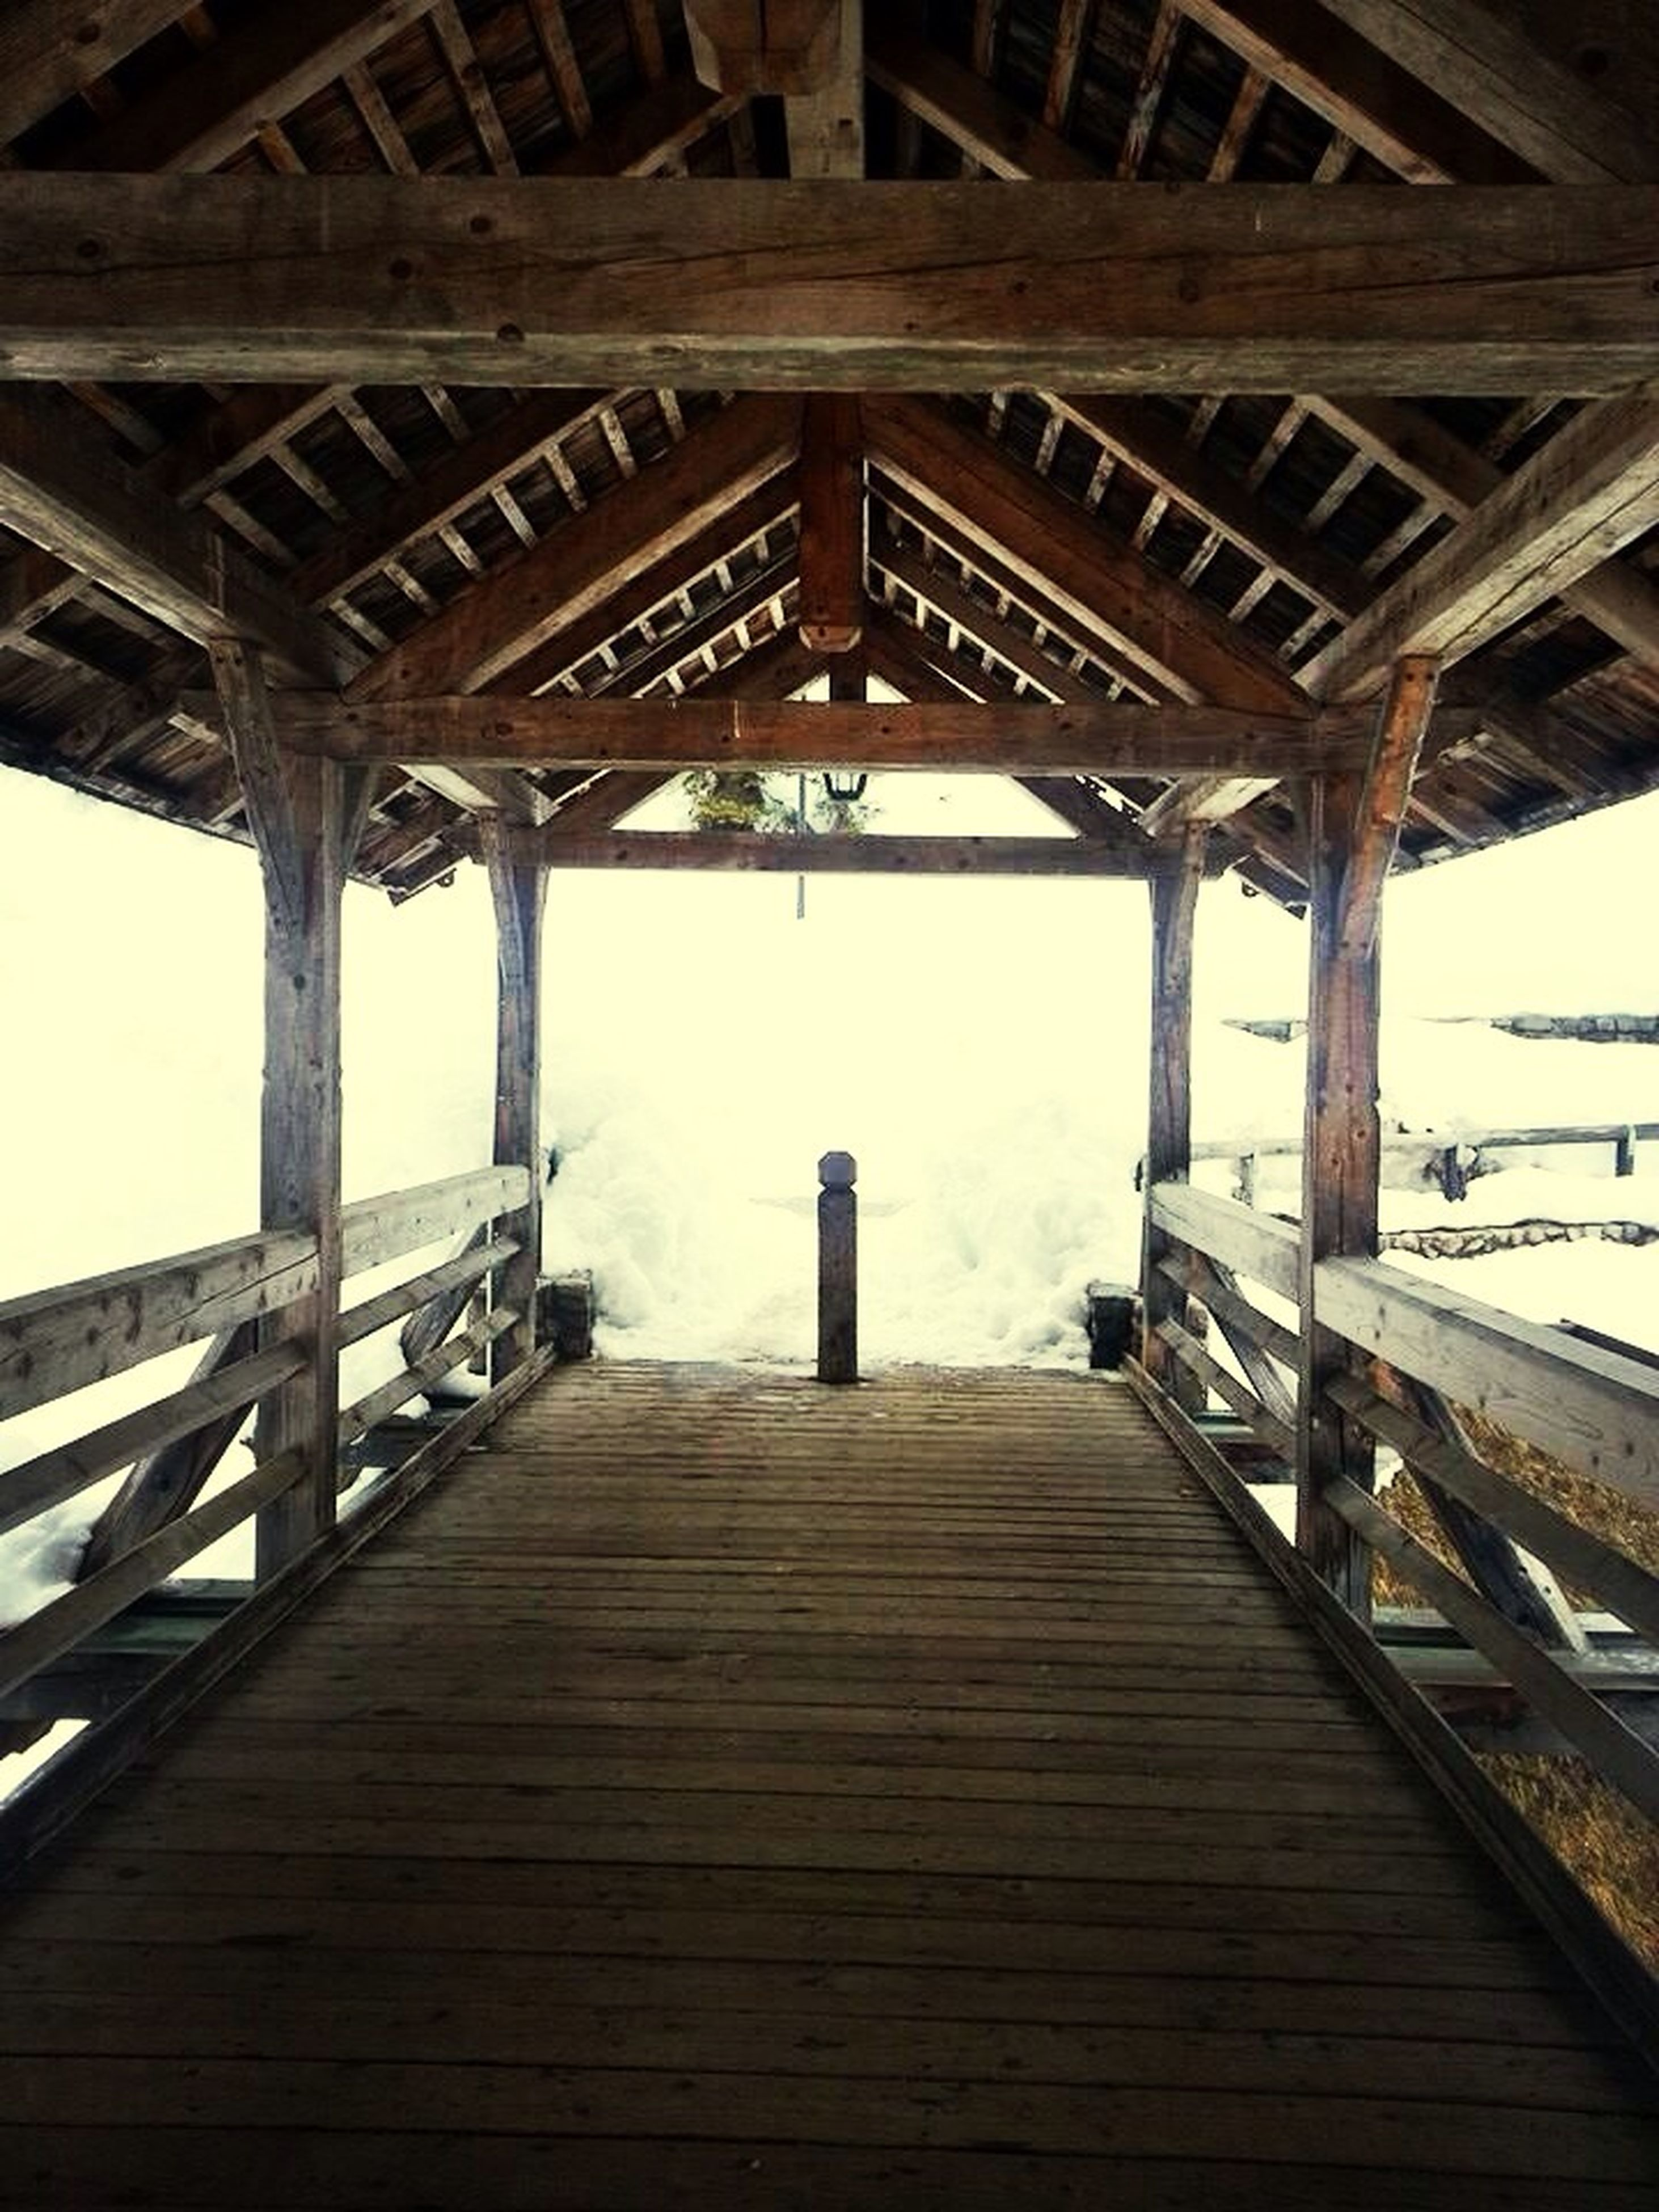 built structure, architecture, wood - material, the way forward, low angle view, diminishing perspective, bridge - man made structure, connection, railing, architectural column, sky, bridge, wooden, day, indoors, engineering, sunlight, vanishing point, pier, long